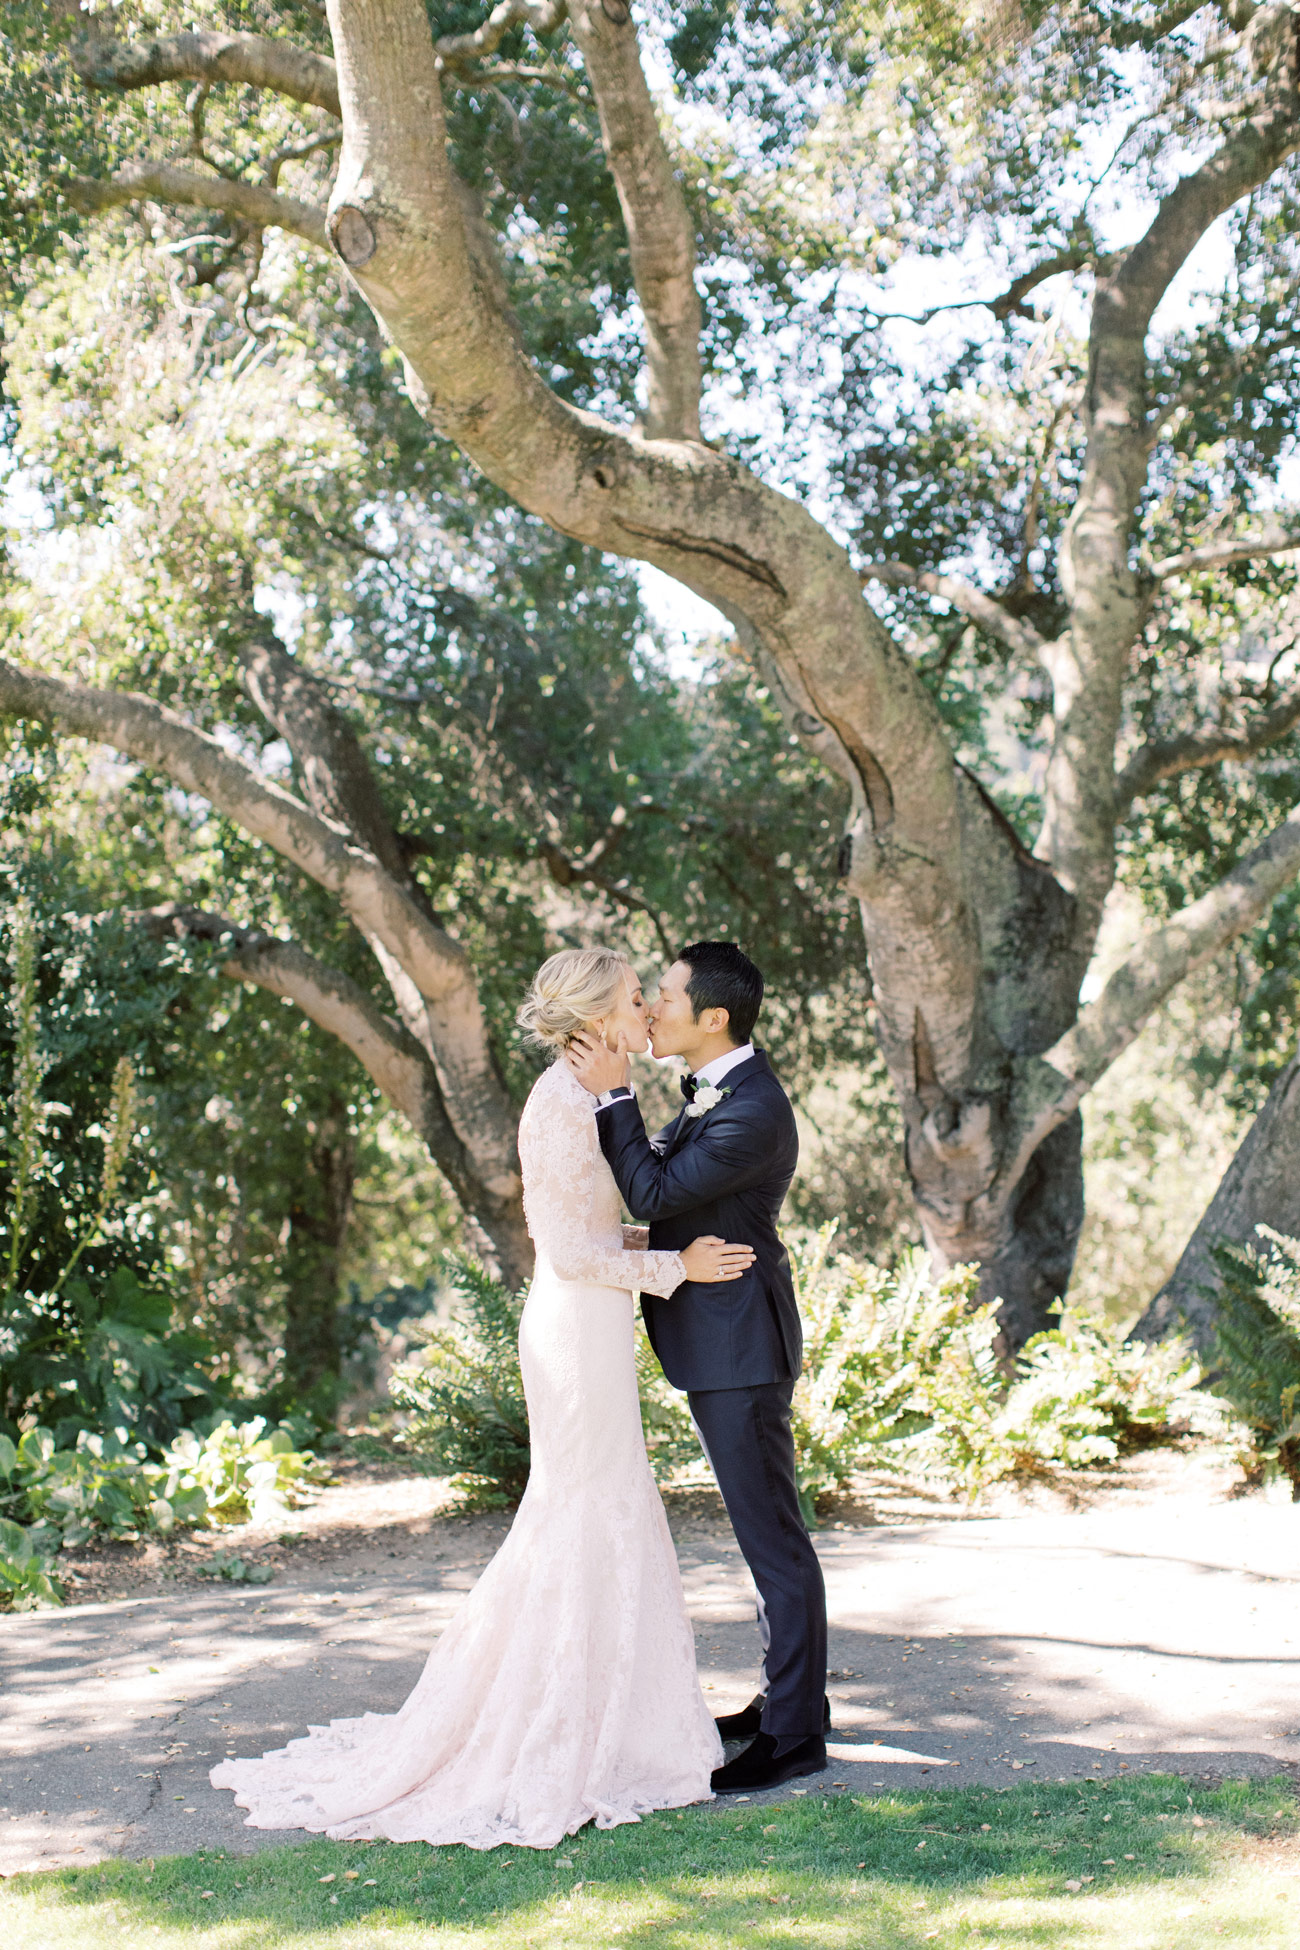 Sarah and Tengbo kissing under tree first look